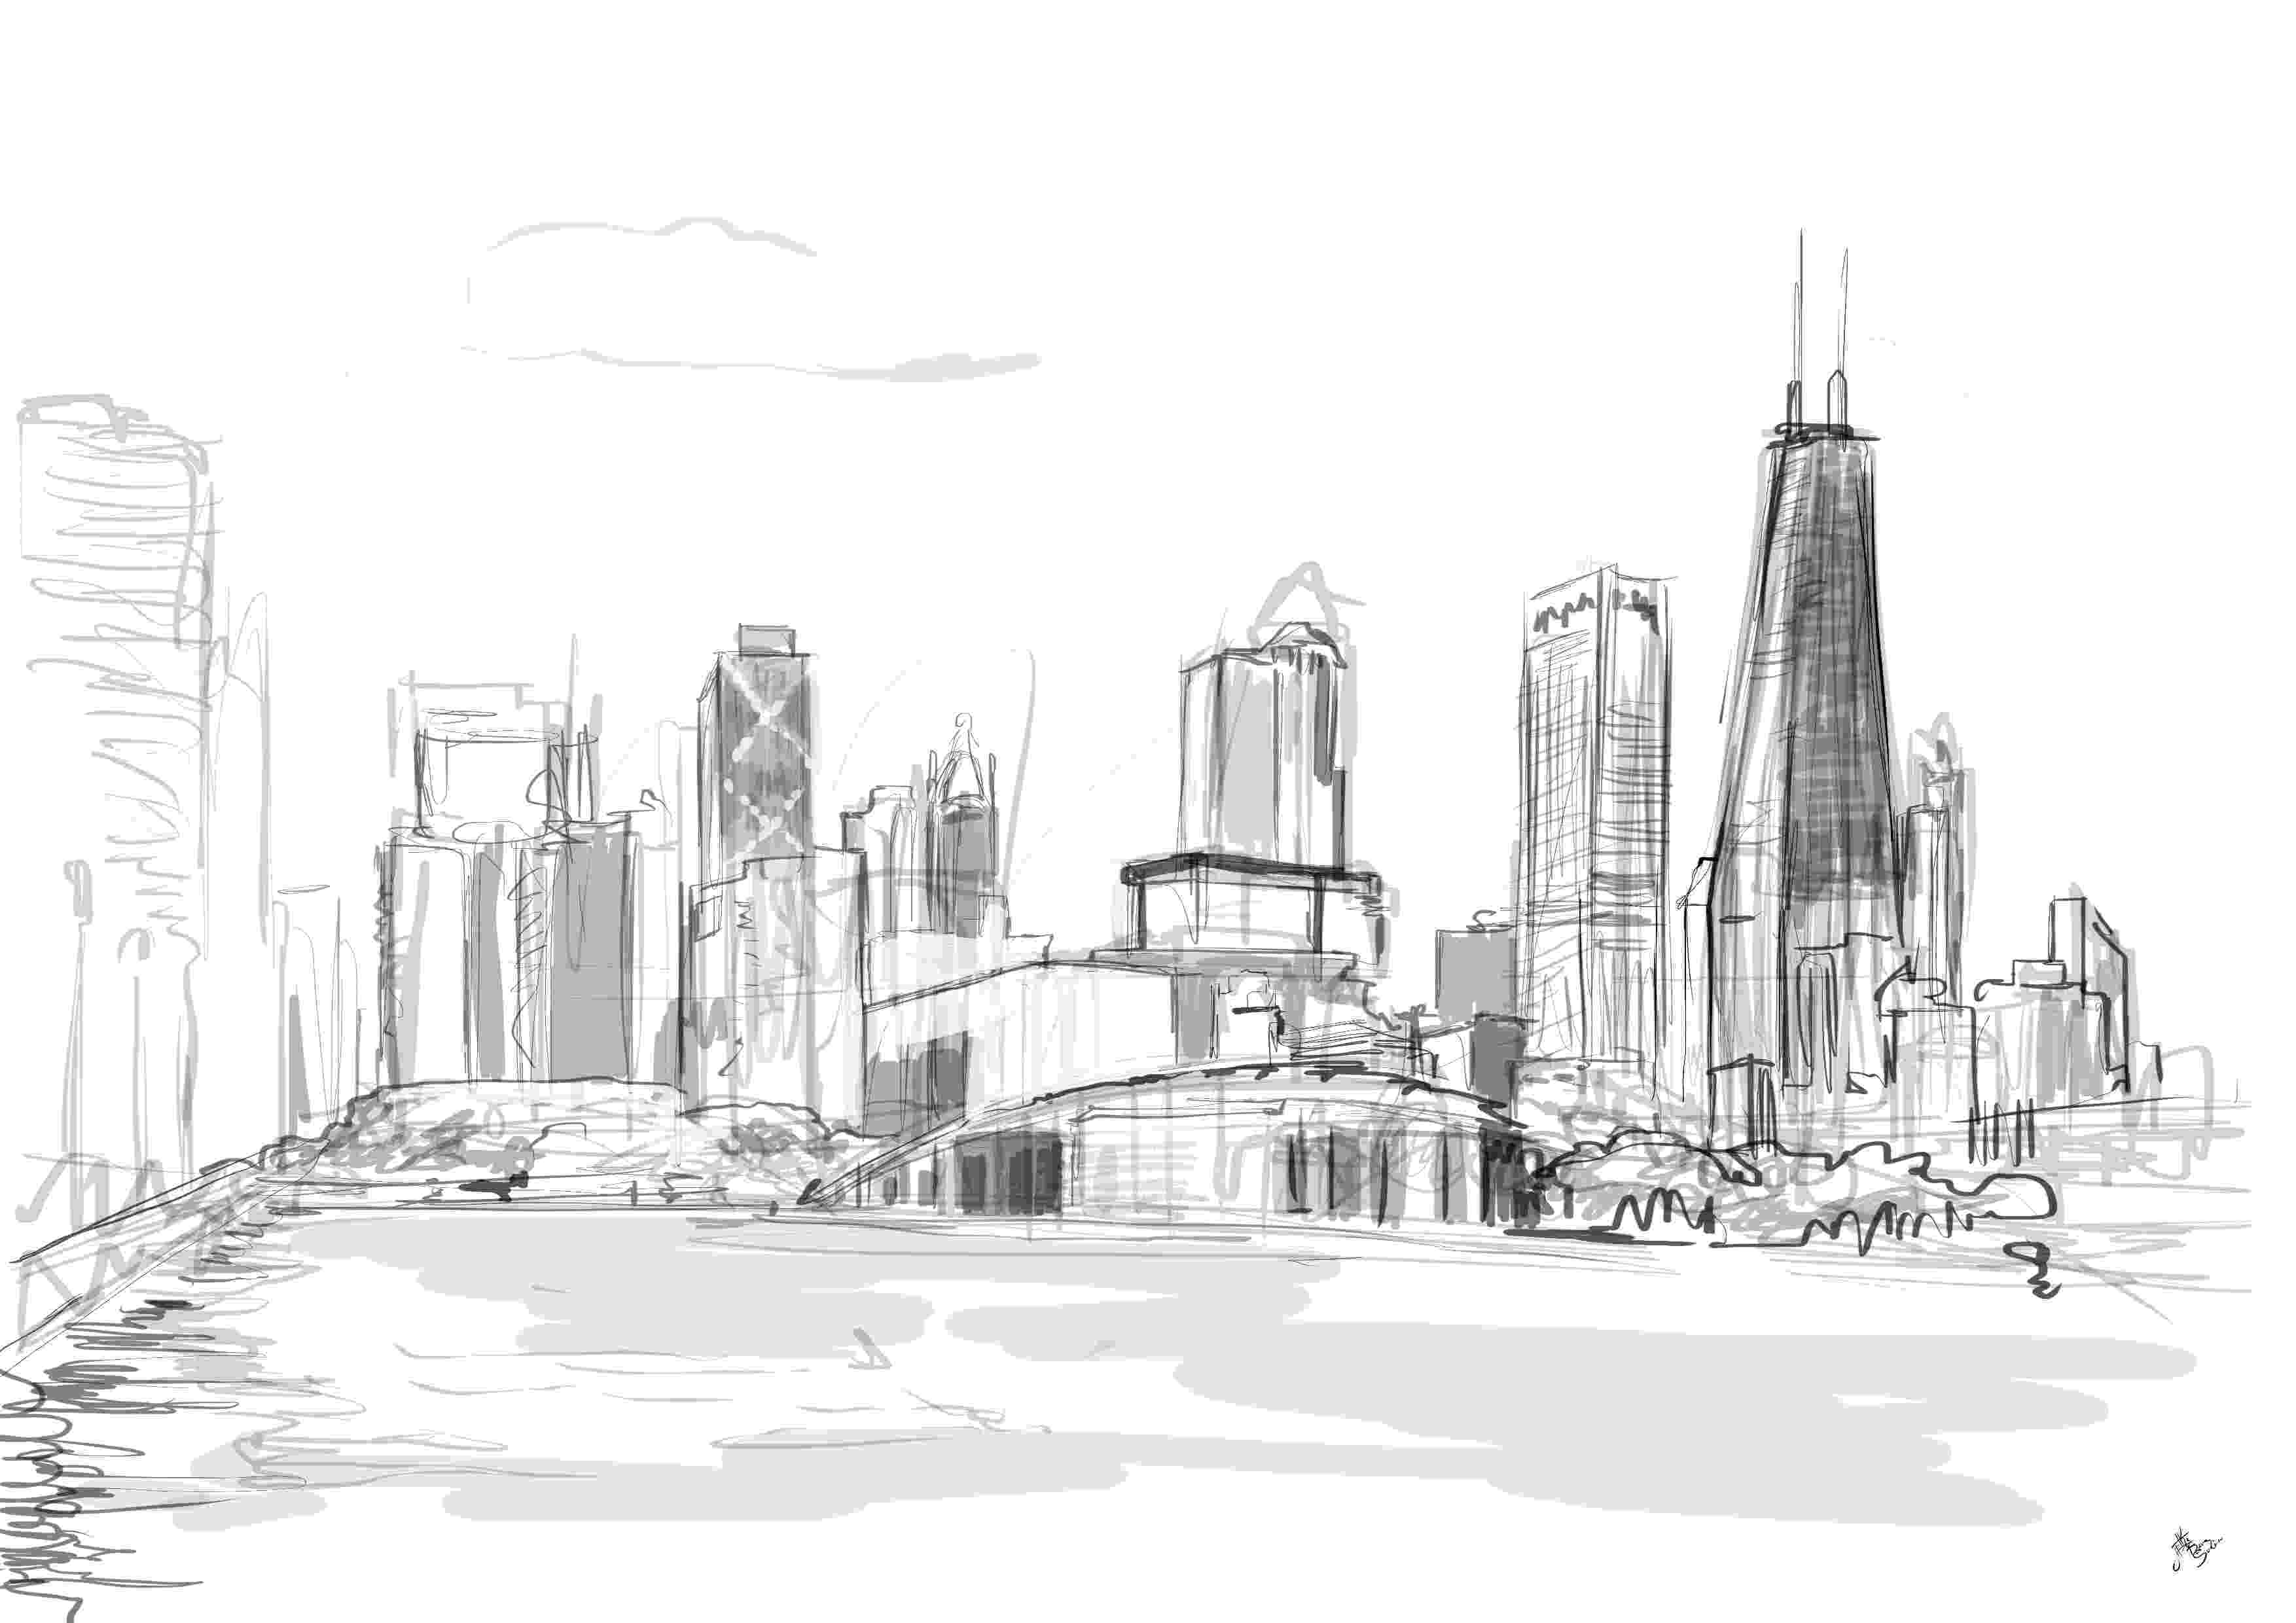 chicago skyline coloring page related image chicago skyline outline drawings easy skyline chicago page coloring